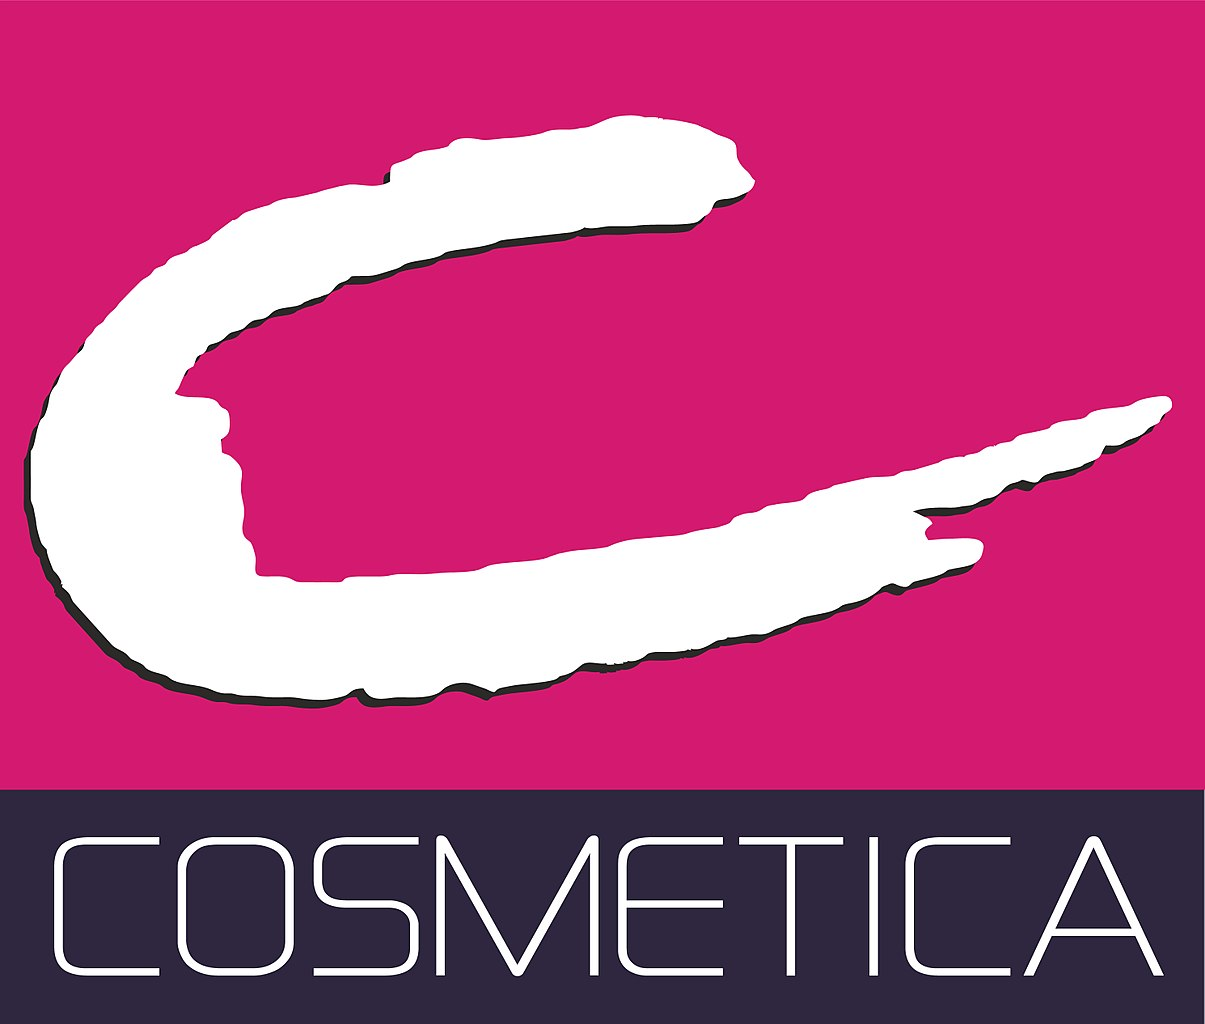 File:Cosmetica Beauty & Personal Care Equipment Trading LLC.jpg - Wikimedia Commons